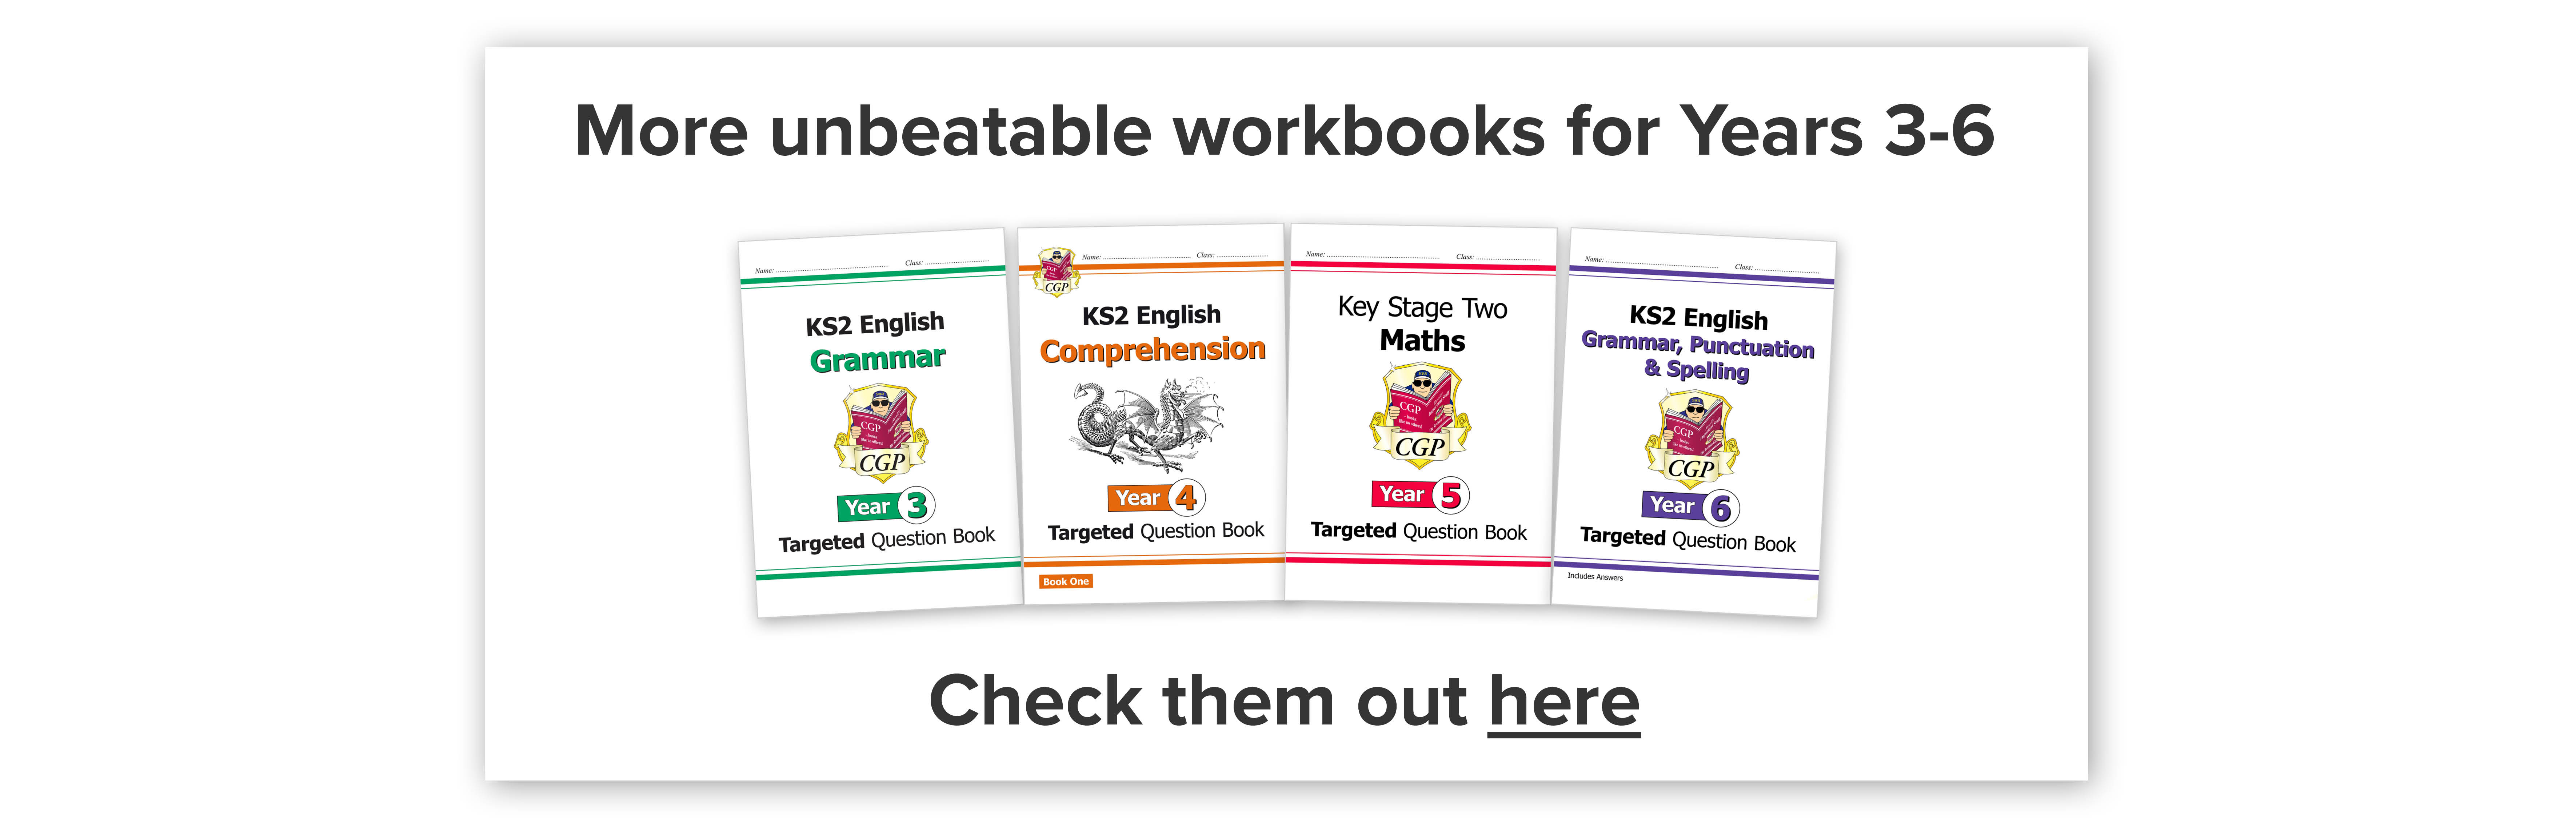 More unbeatable workbooks for Years 3-6